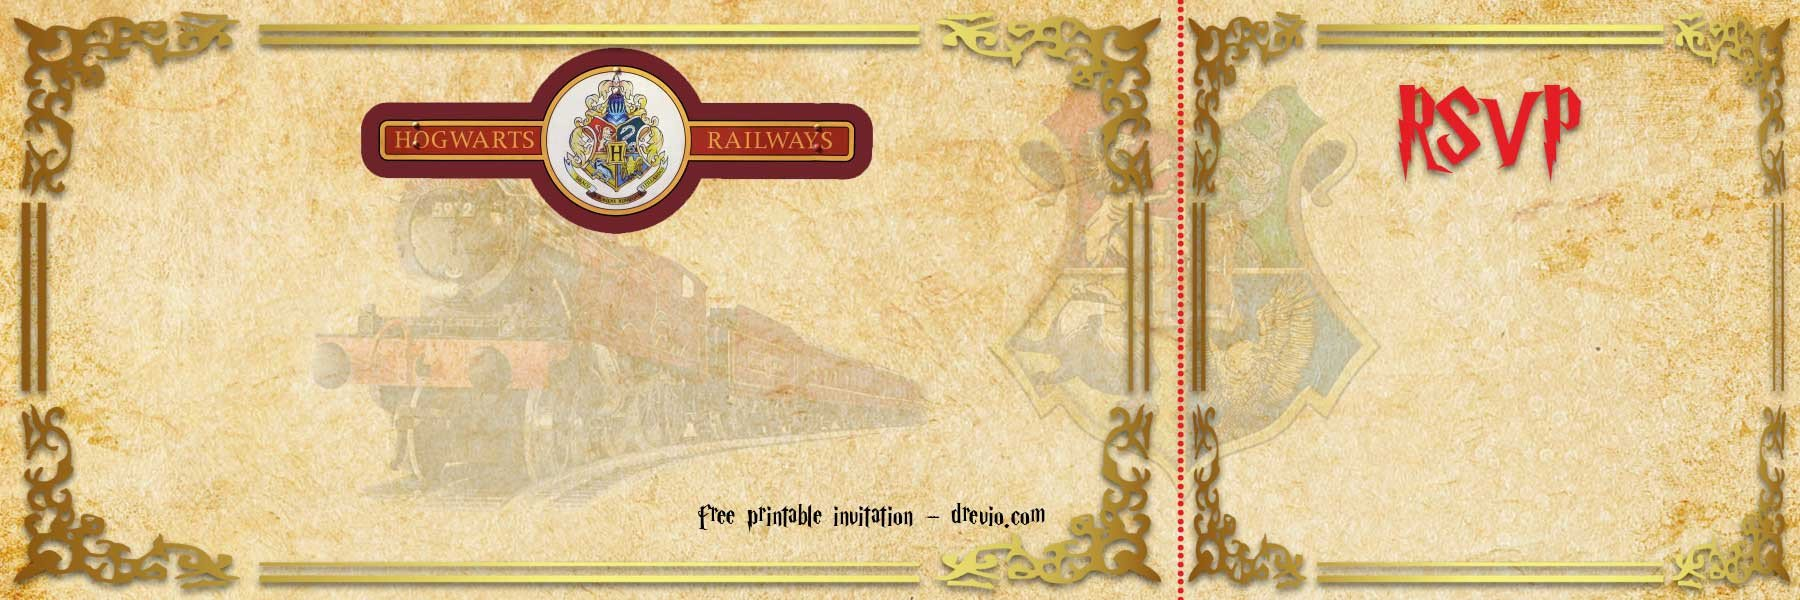 Hogwarts Express Ticket Template Free Printable Hogwarts Express Ticket Invitation Template